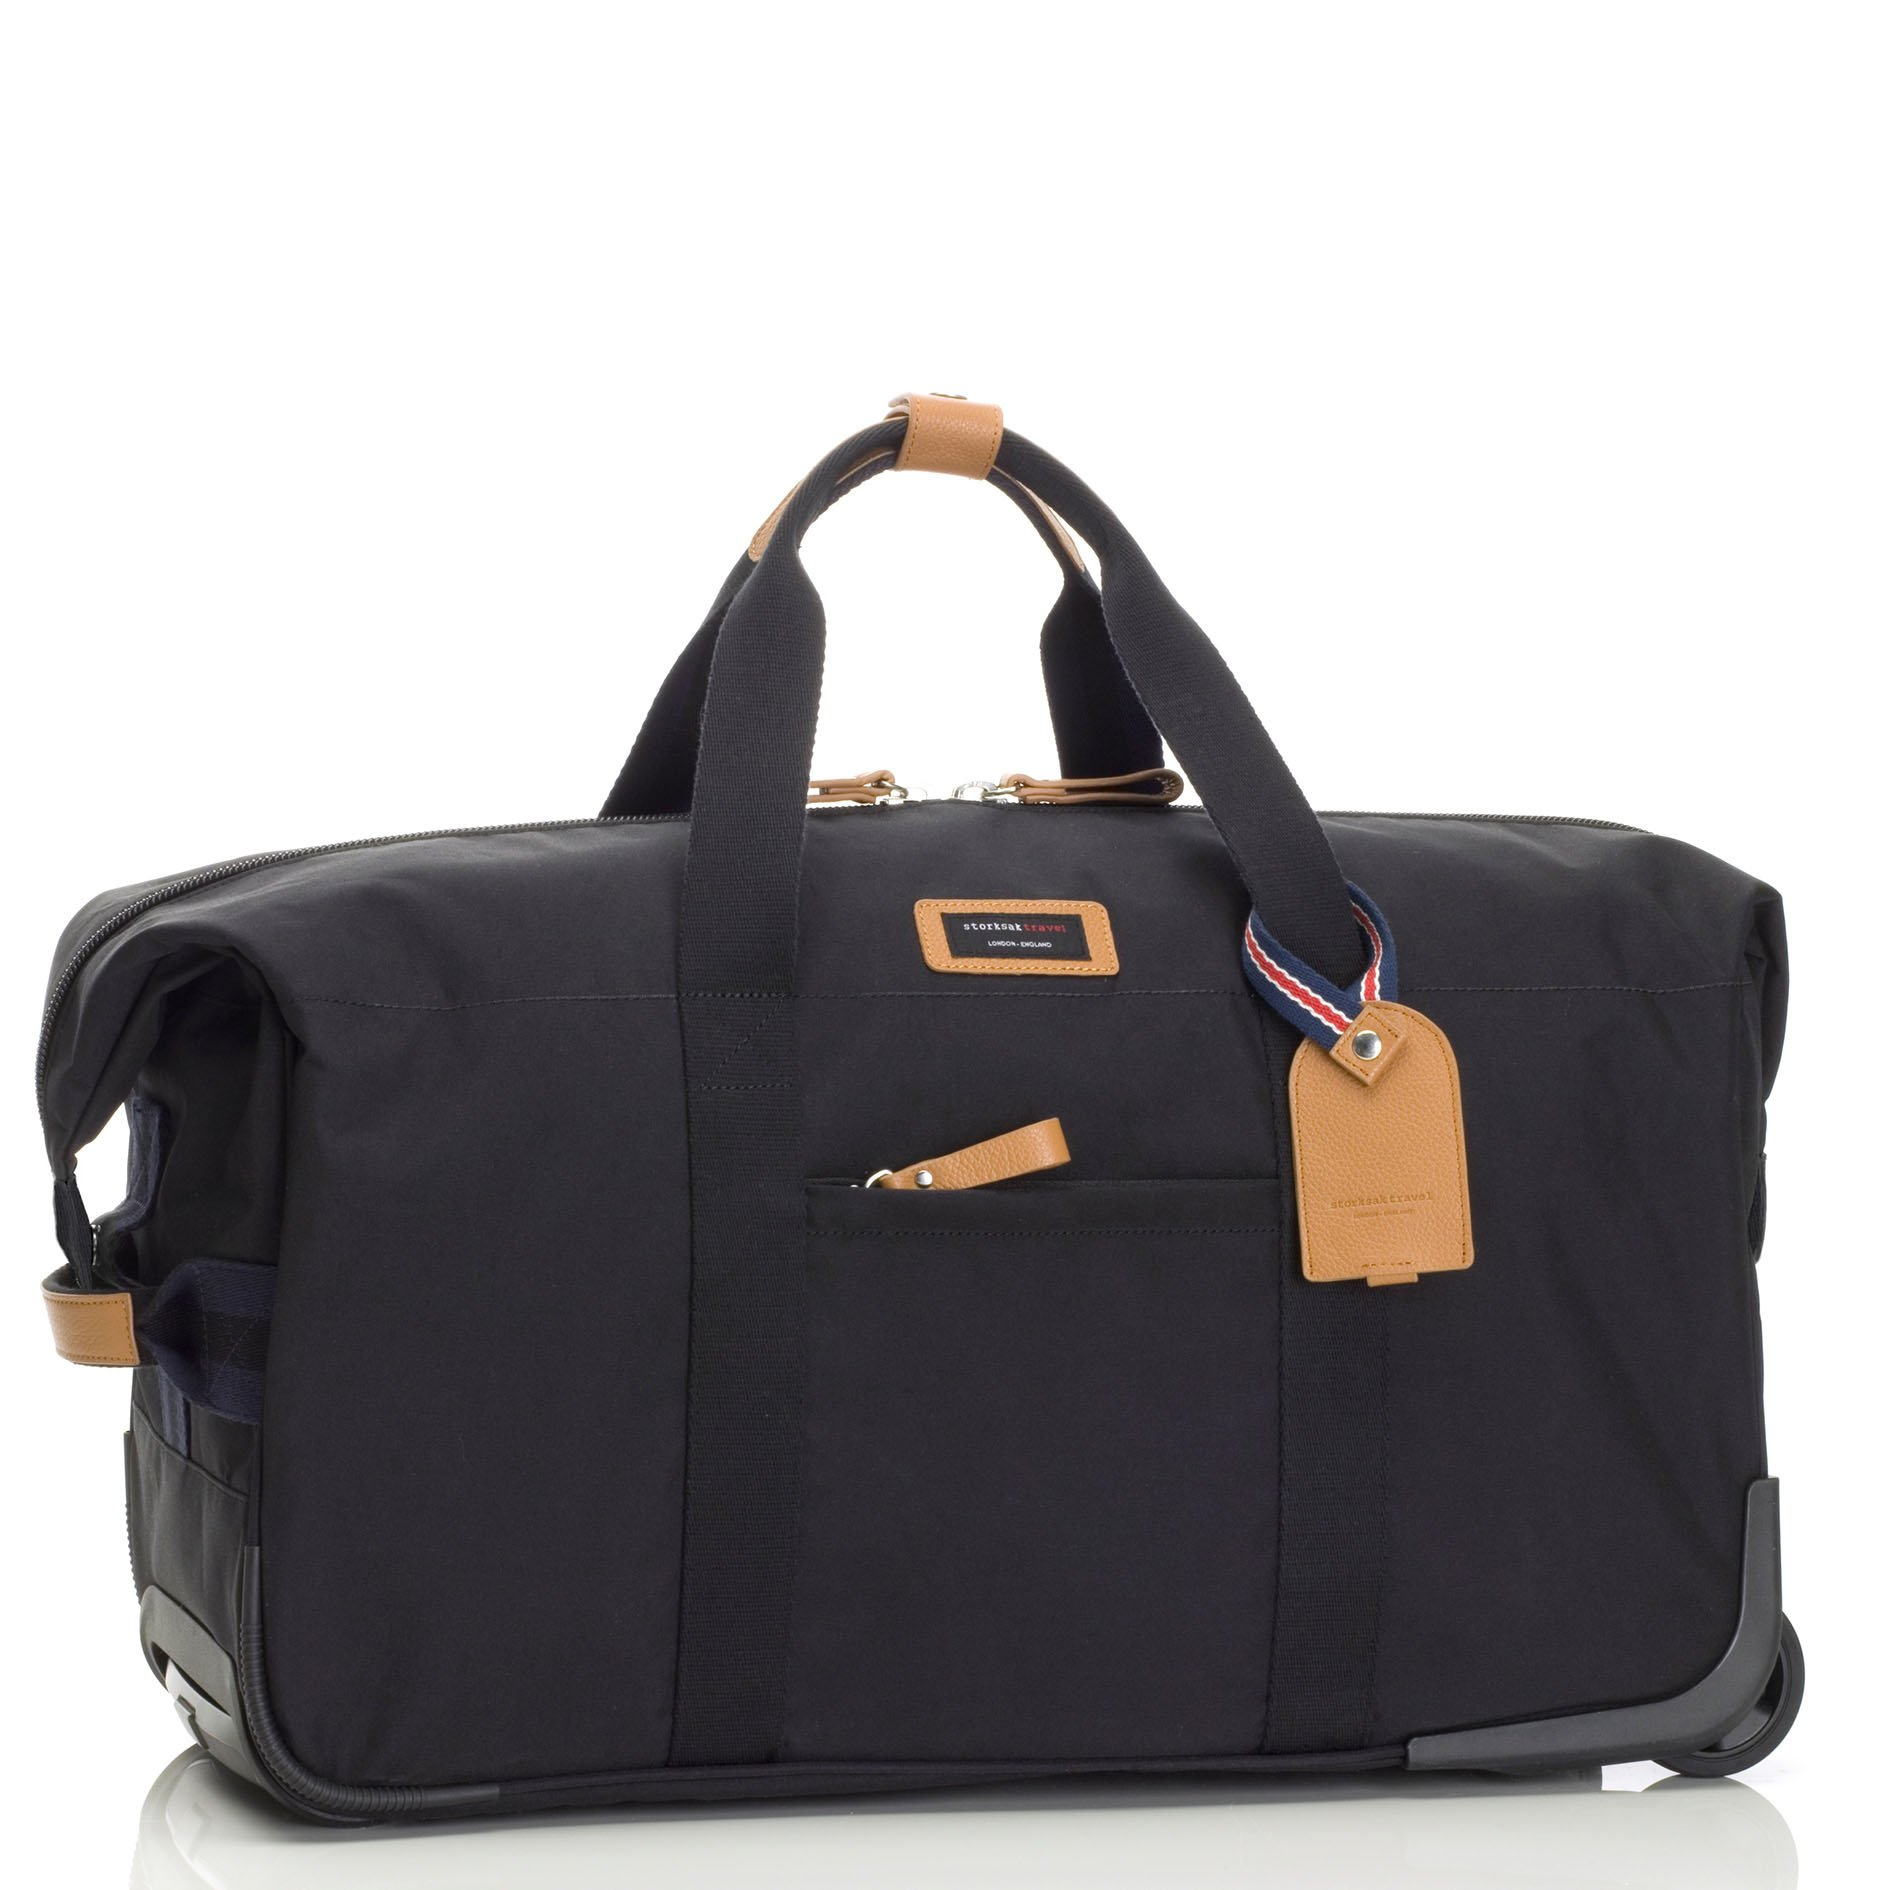 Storksak Travel Cabin Carry On with Organizer, Black